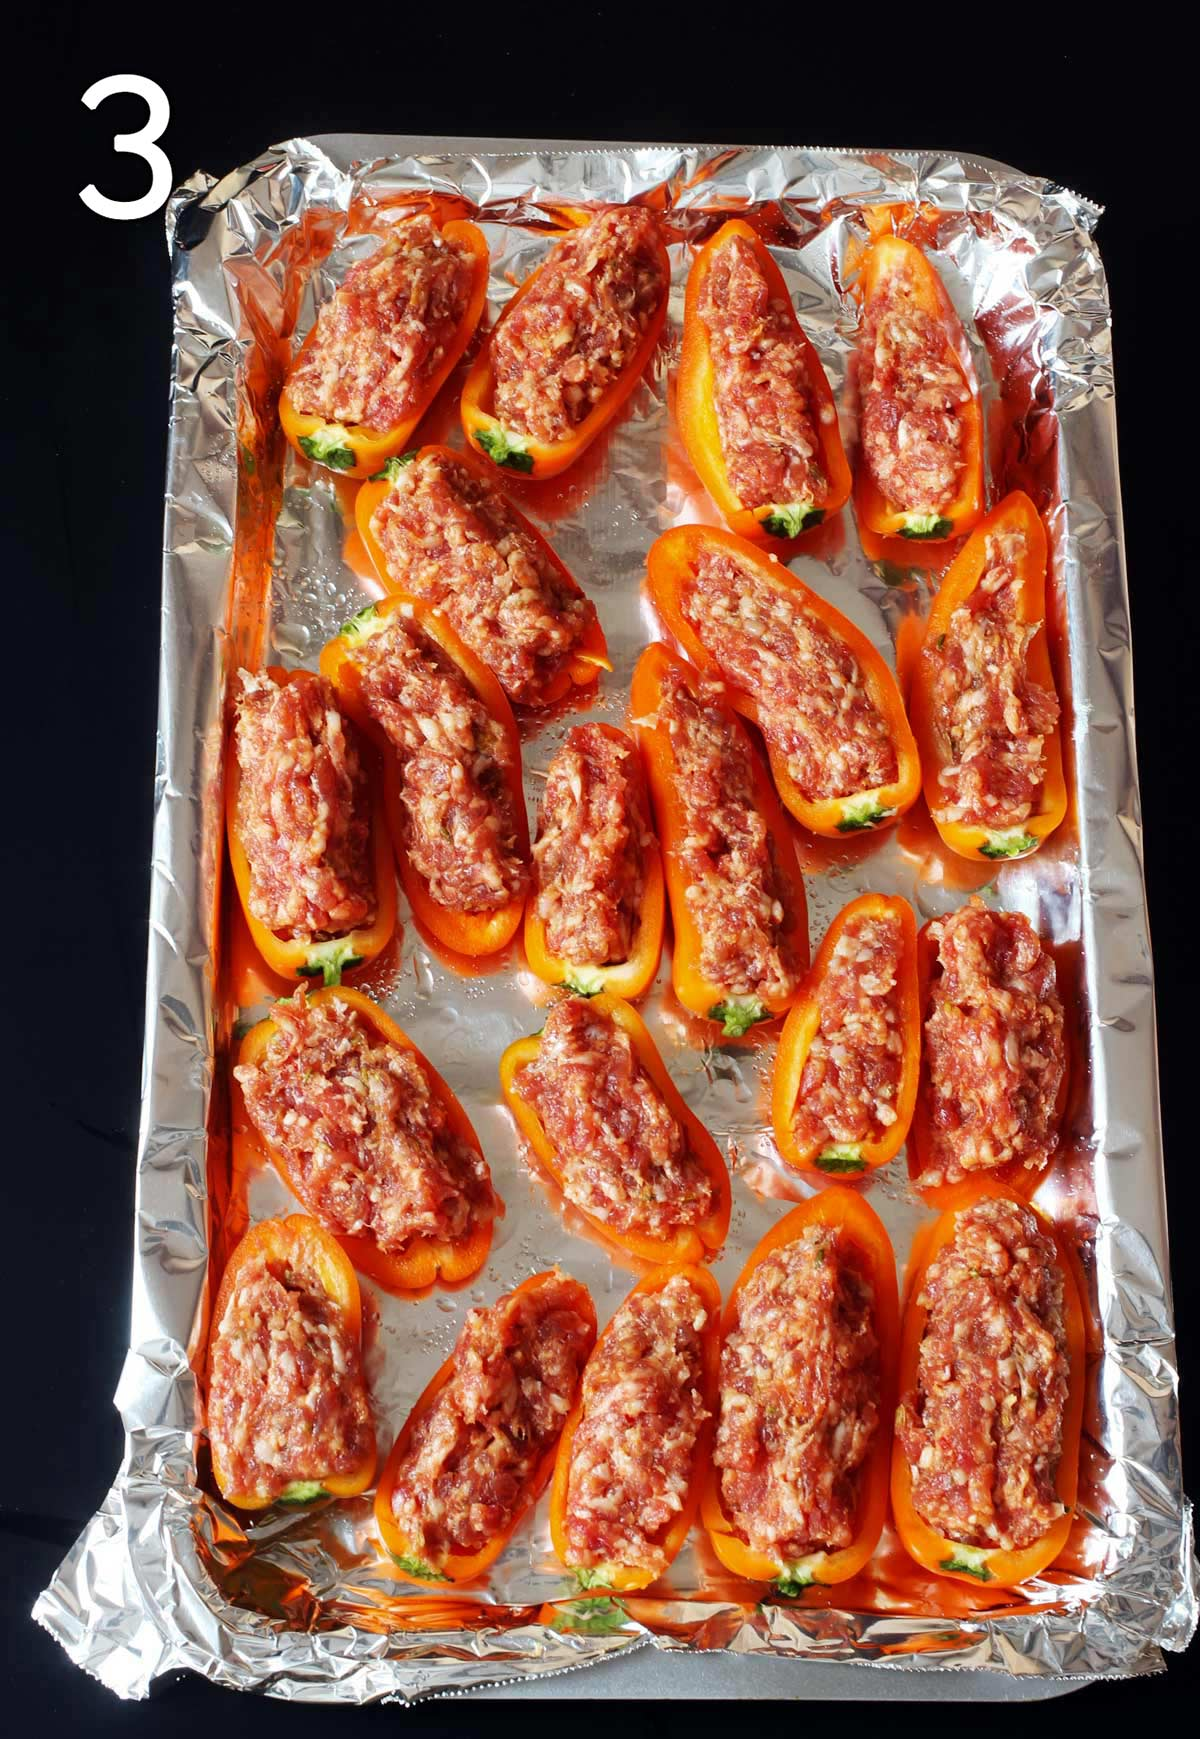 peppers stuffed with uncooked sausage on baking sheet.